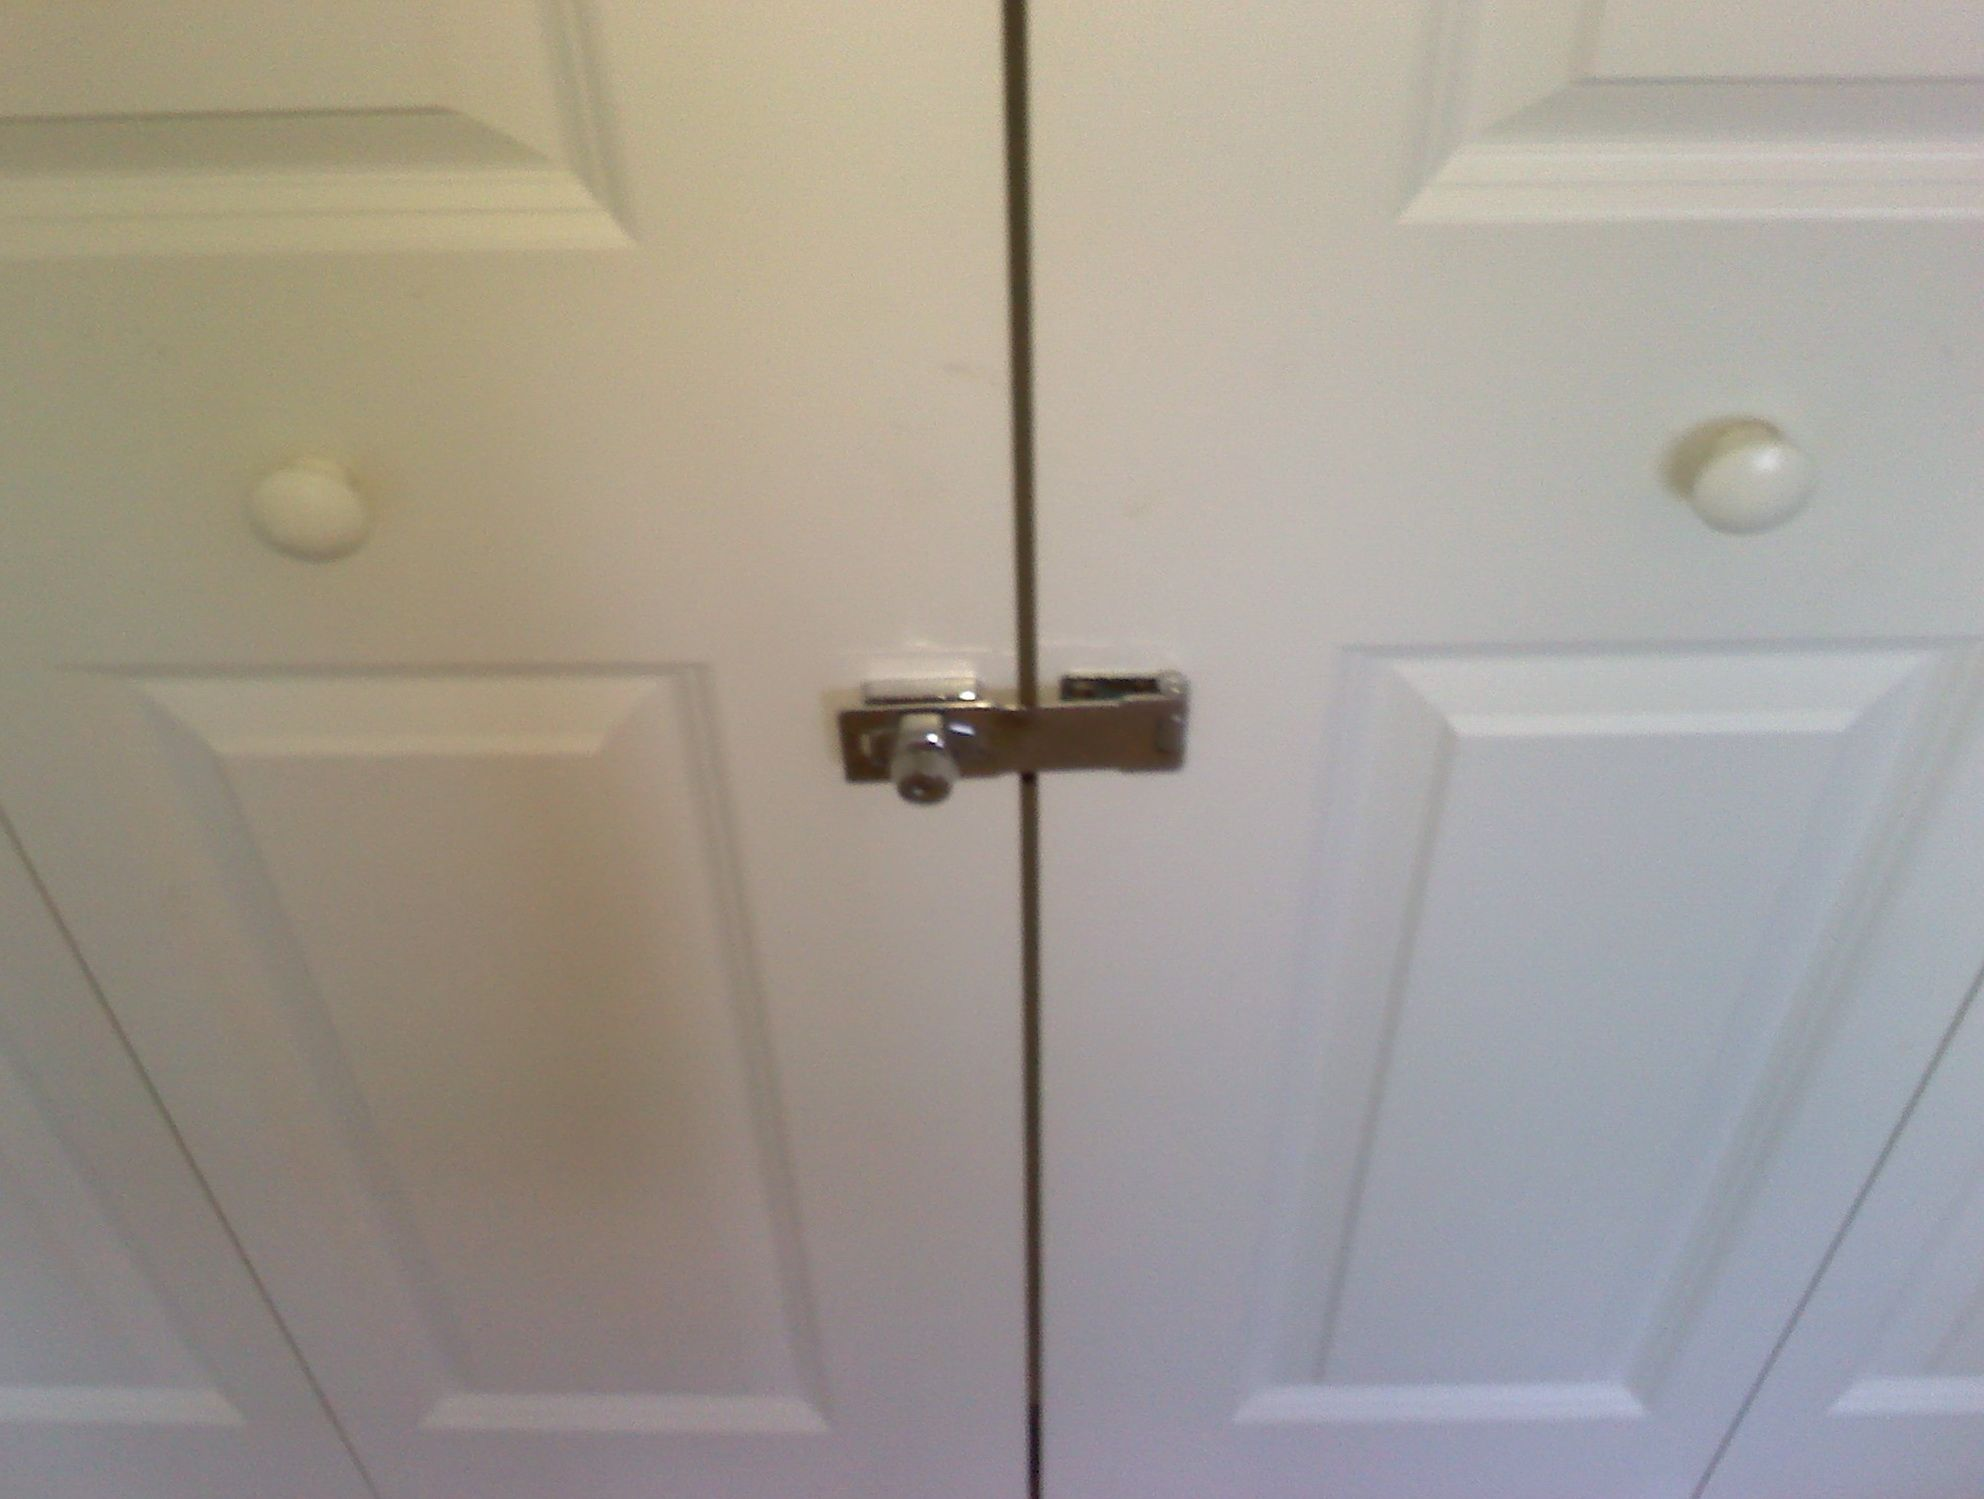 Closet Double Door Lock If You Are Contemplating Custom Cabinets Sliding Doors A Vital Point For To Think About